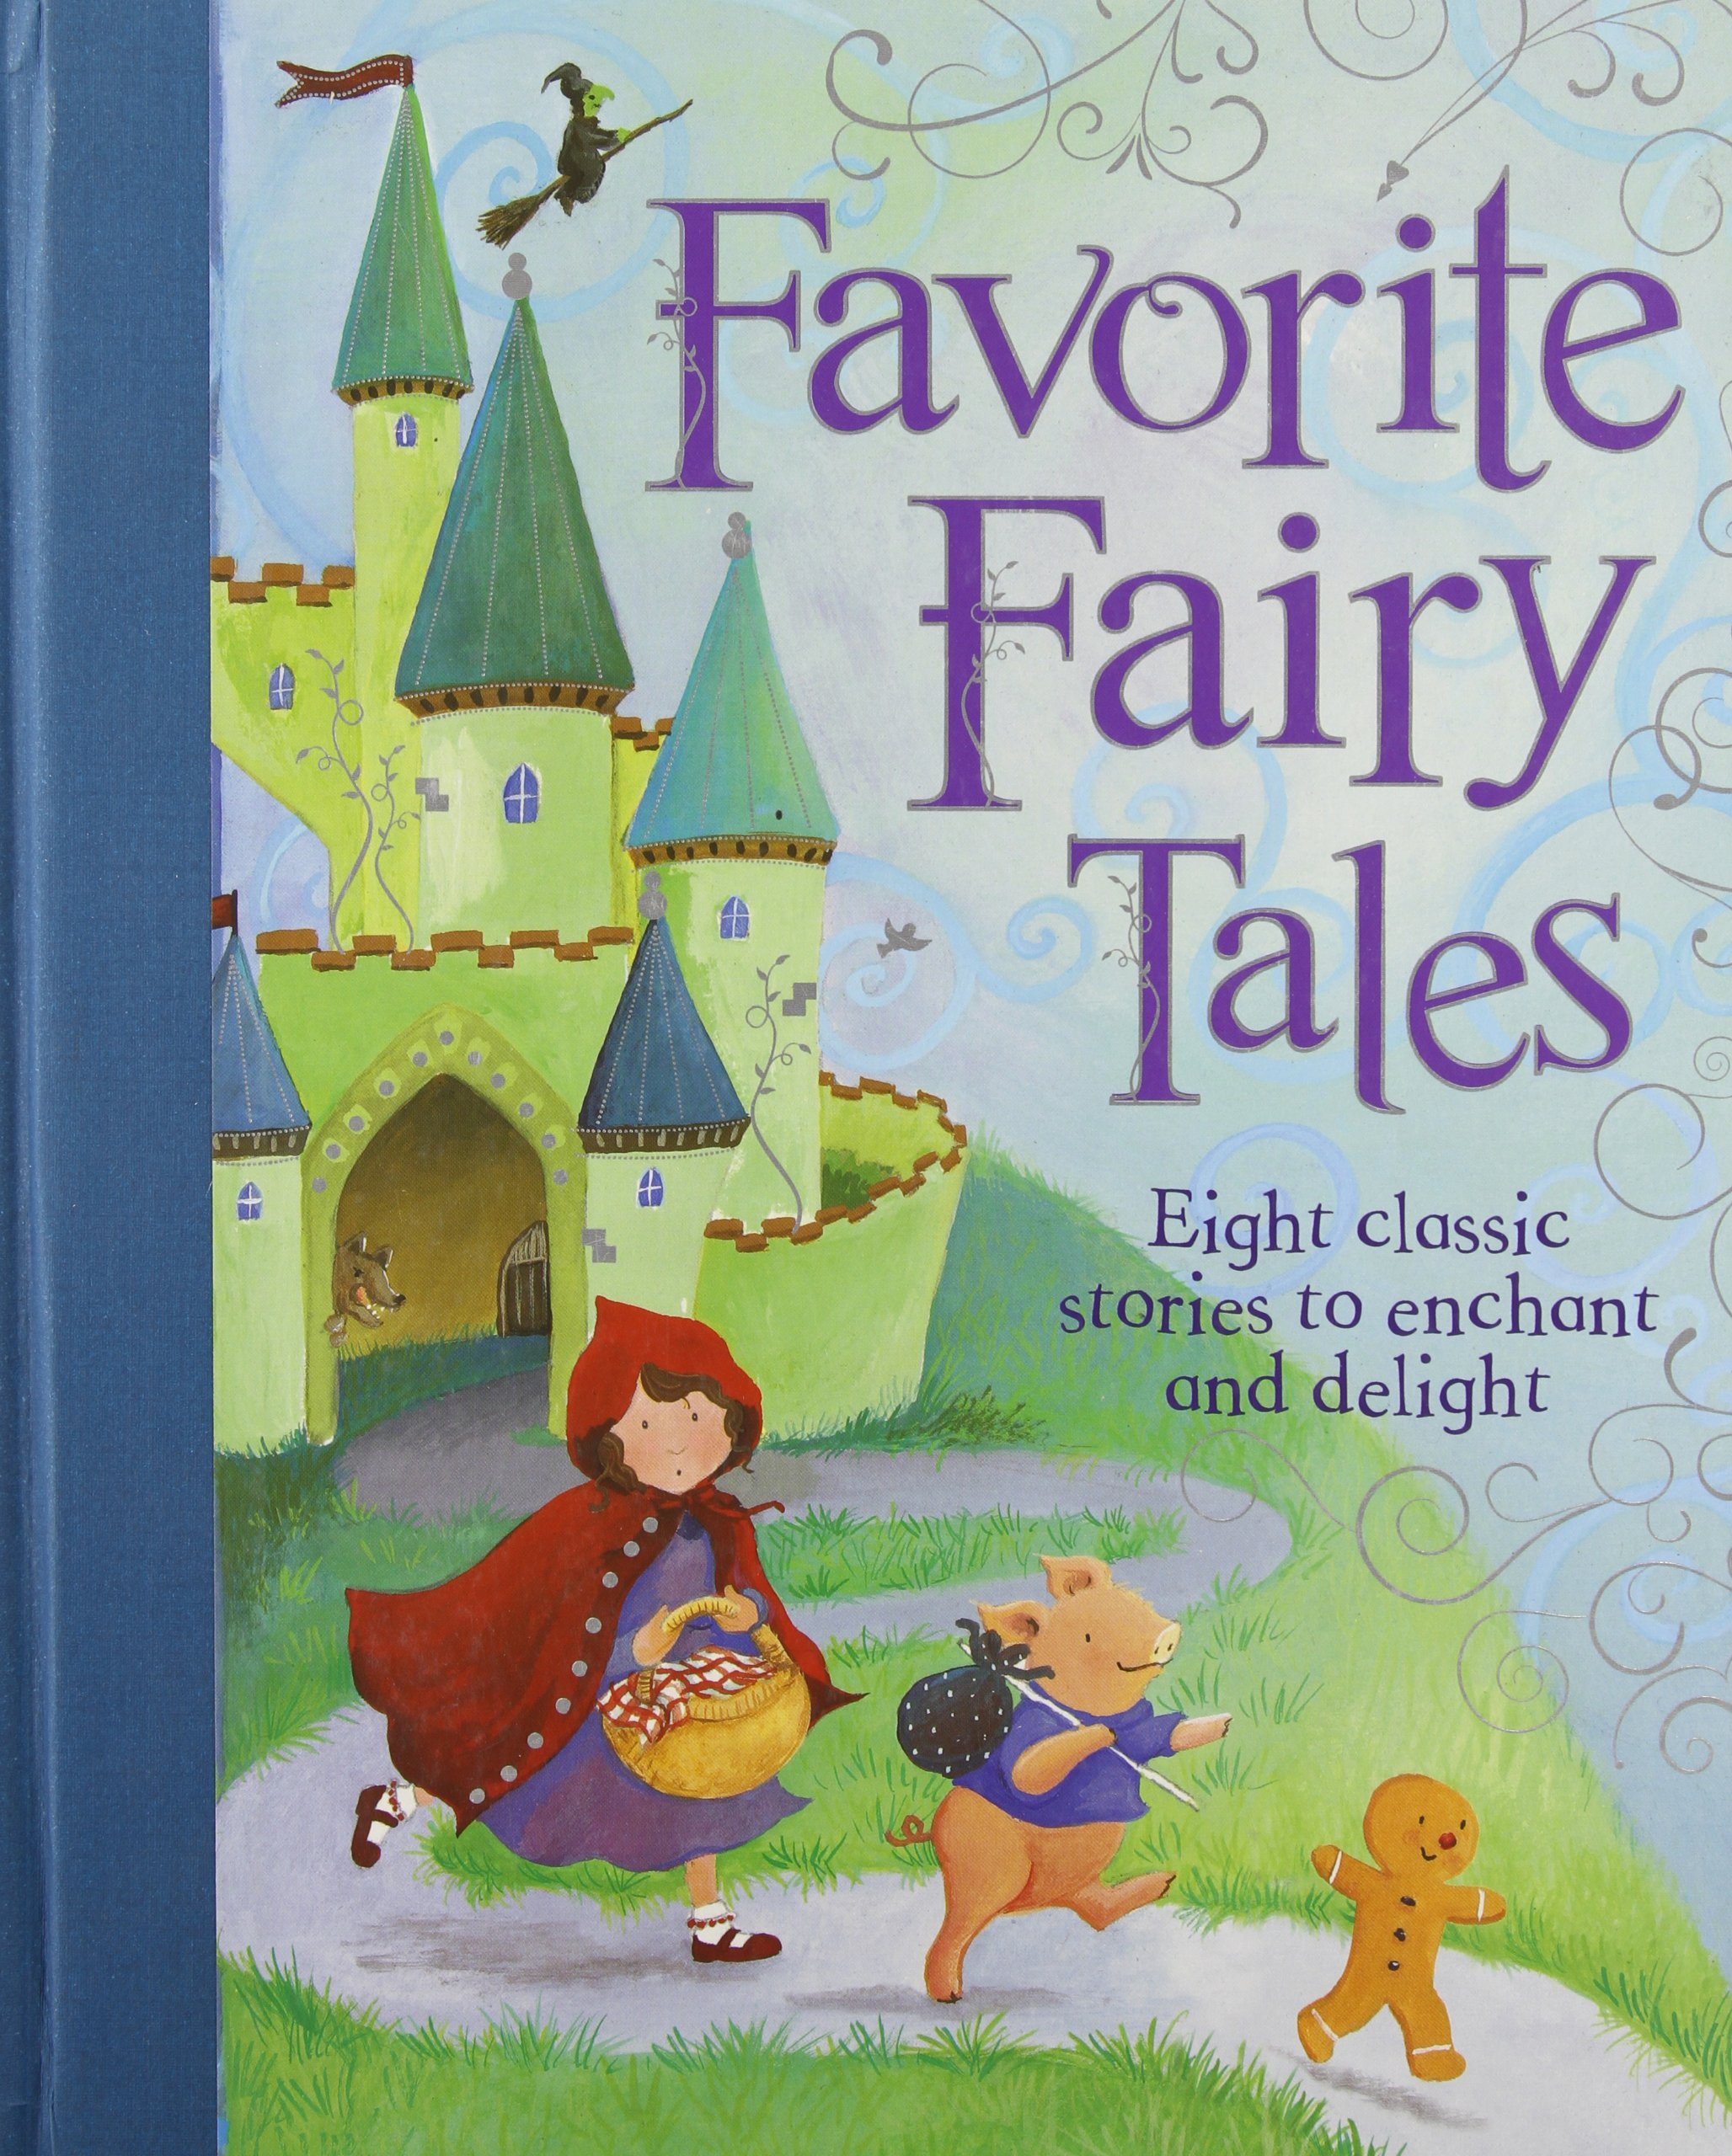 Favorite Fairy Tales: Nine Classic Stories to Enchant and Delight (Treasuries)